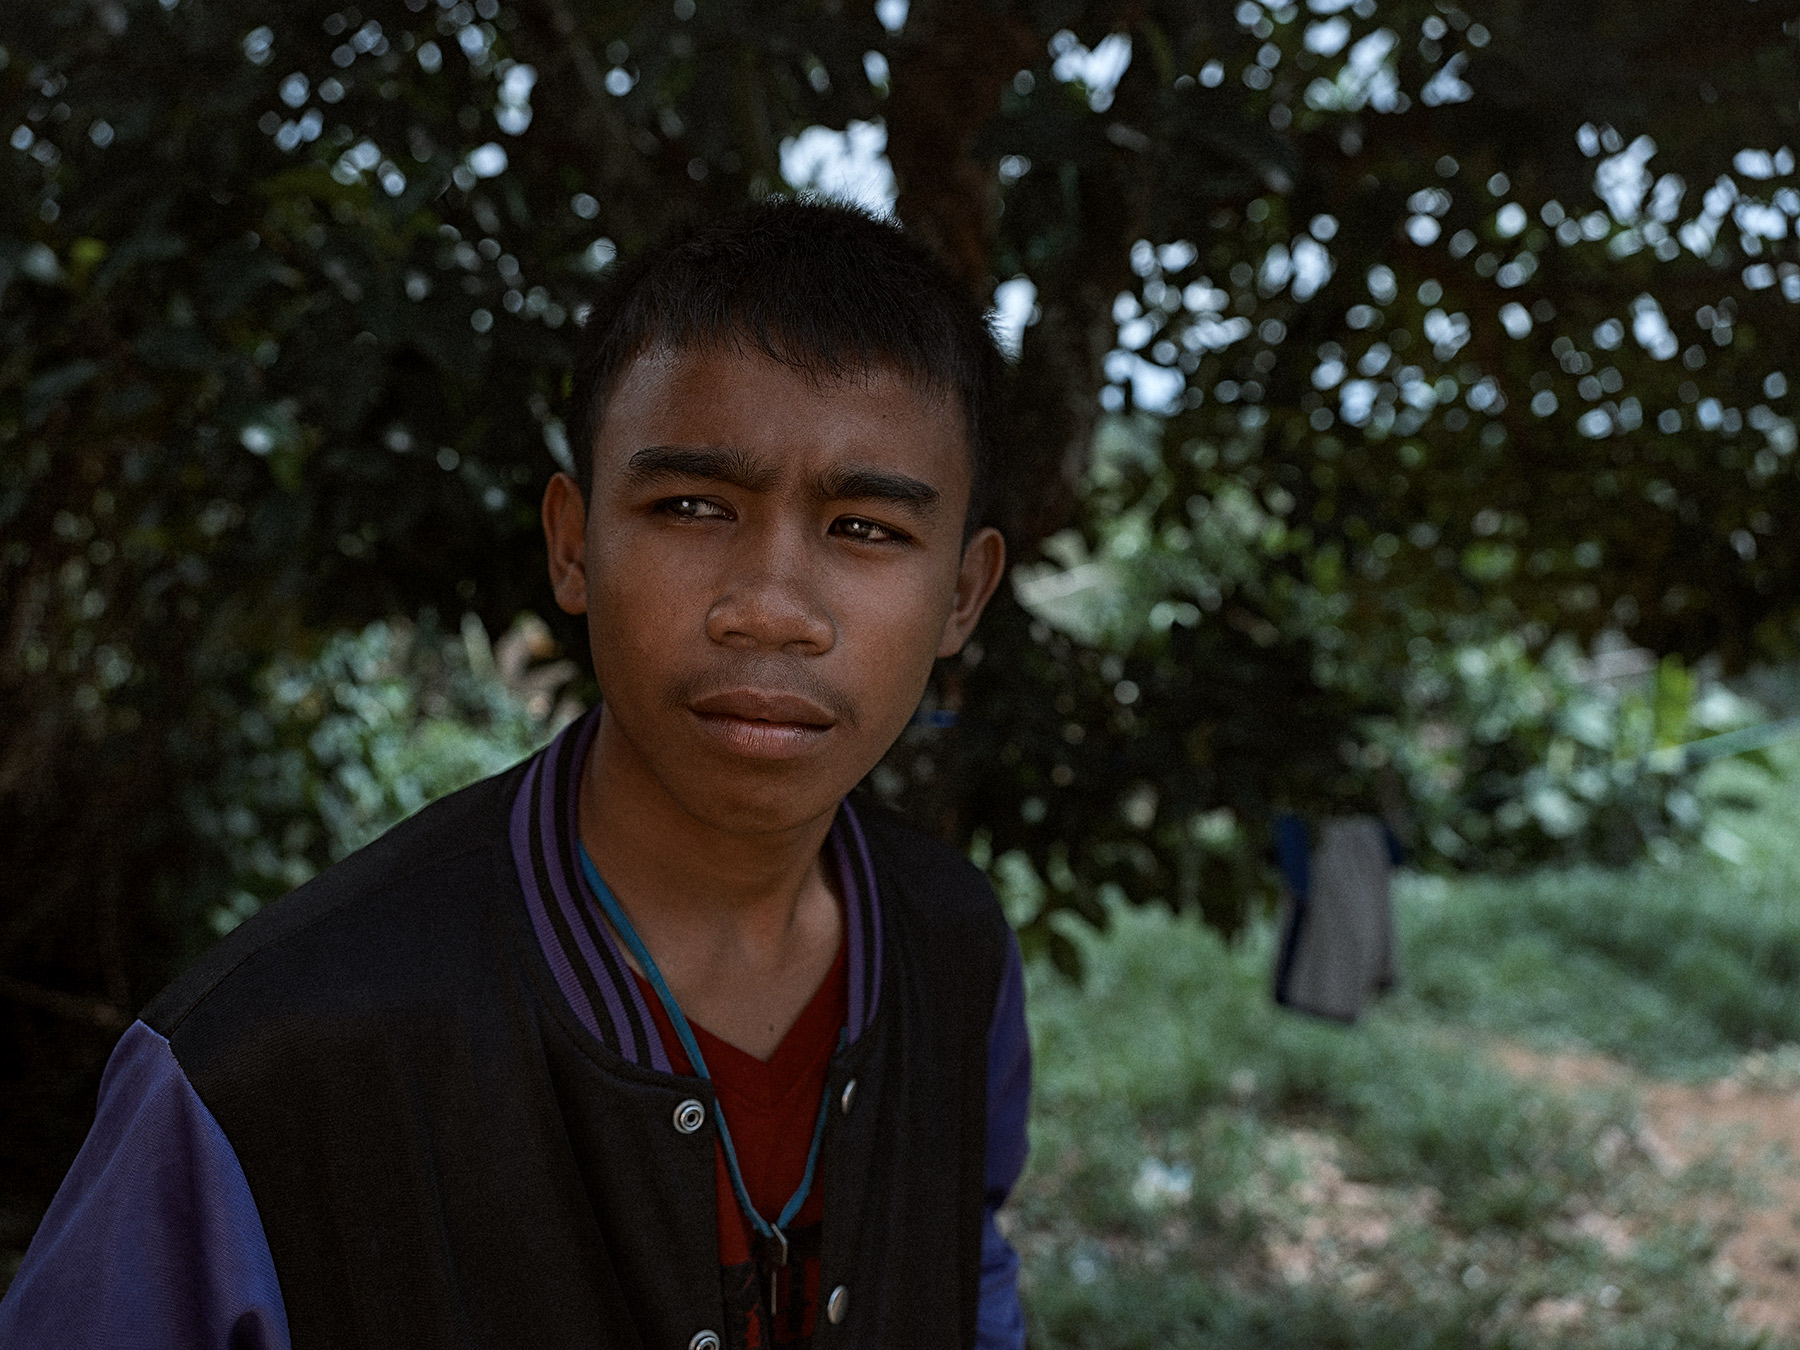 Good Boy Wolf Photographer, Philippines, teenager stares camera, purple black jacket